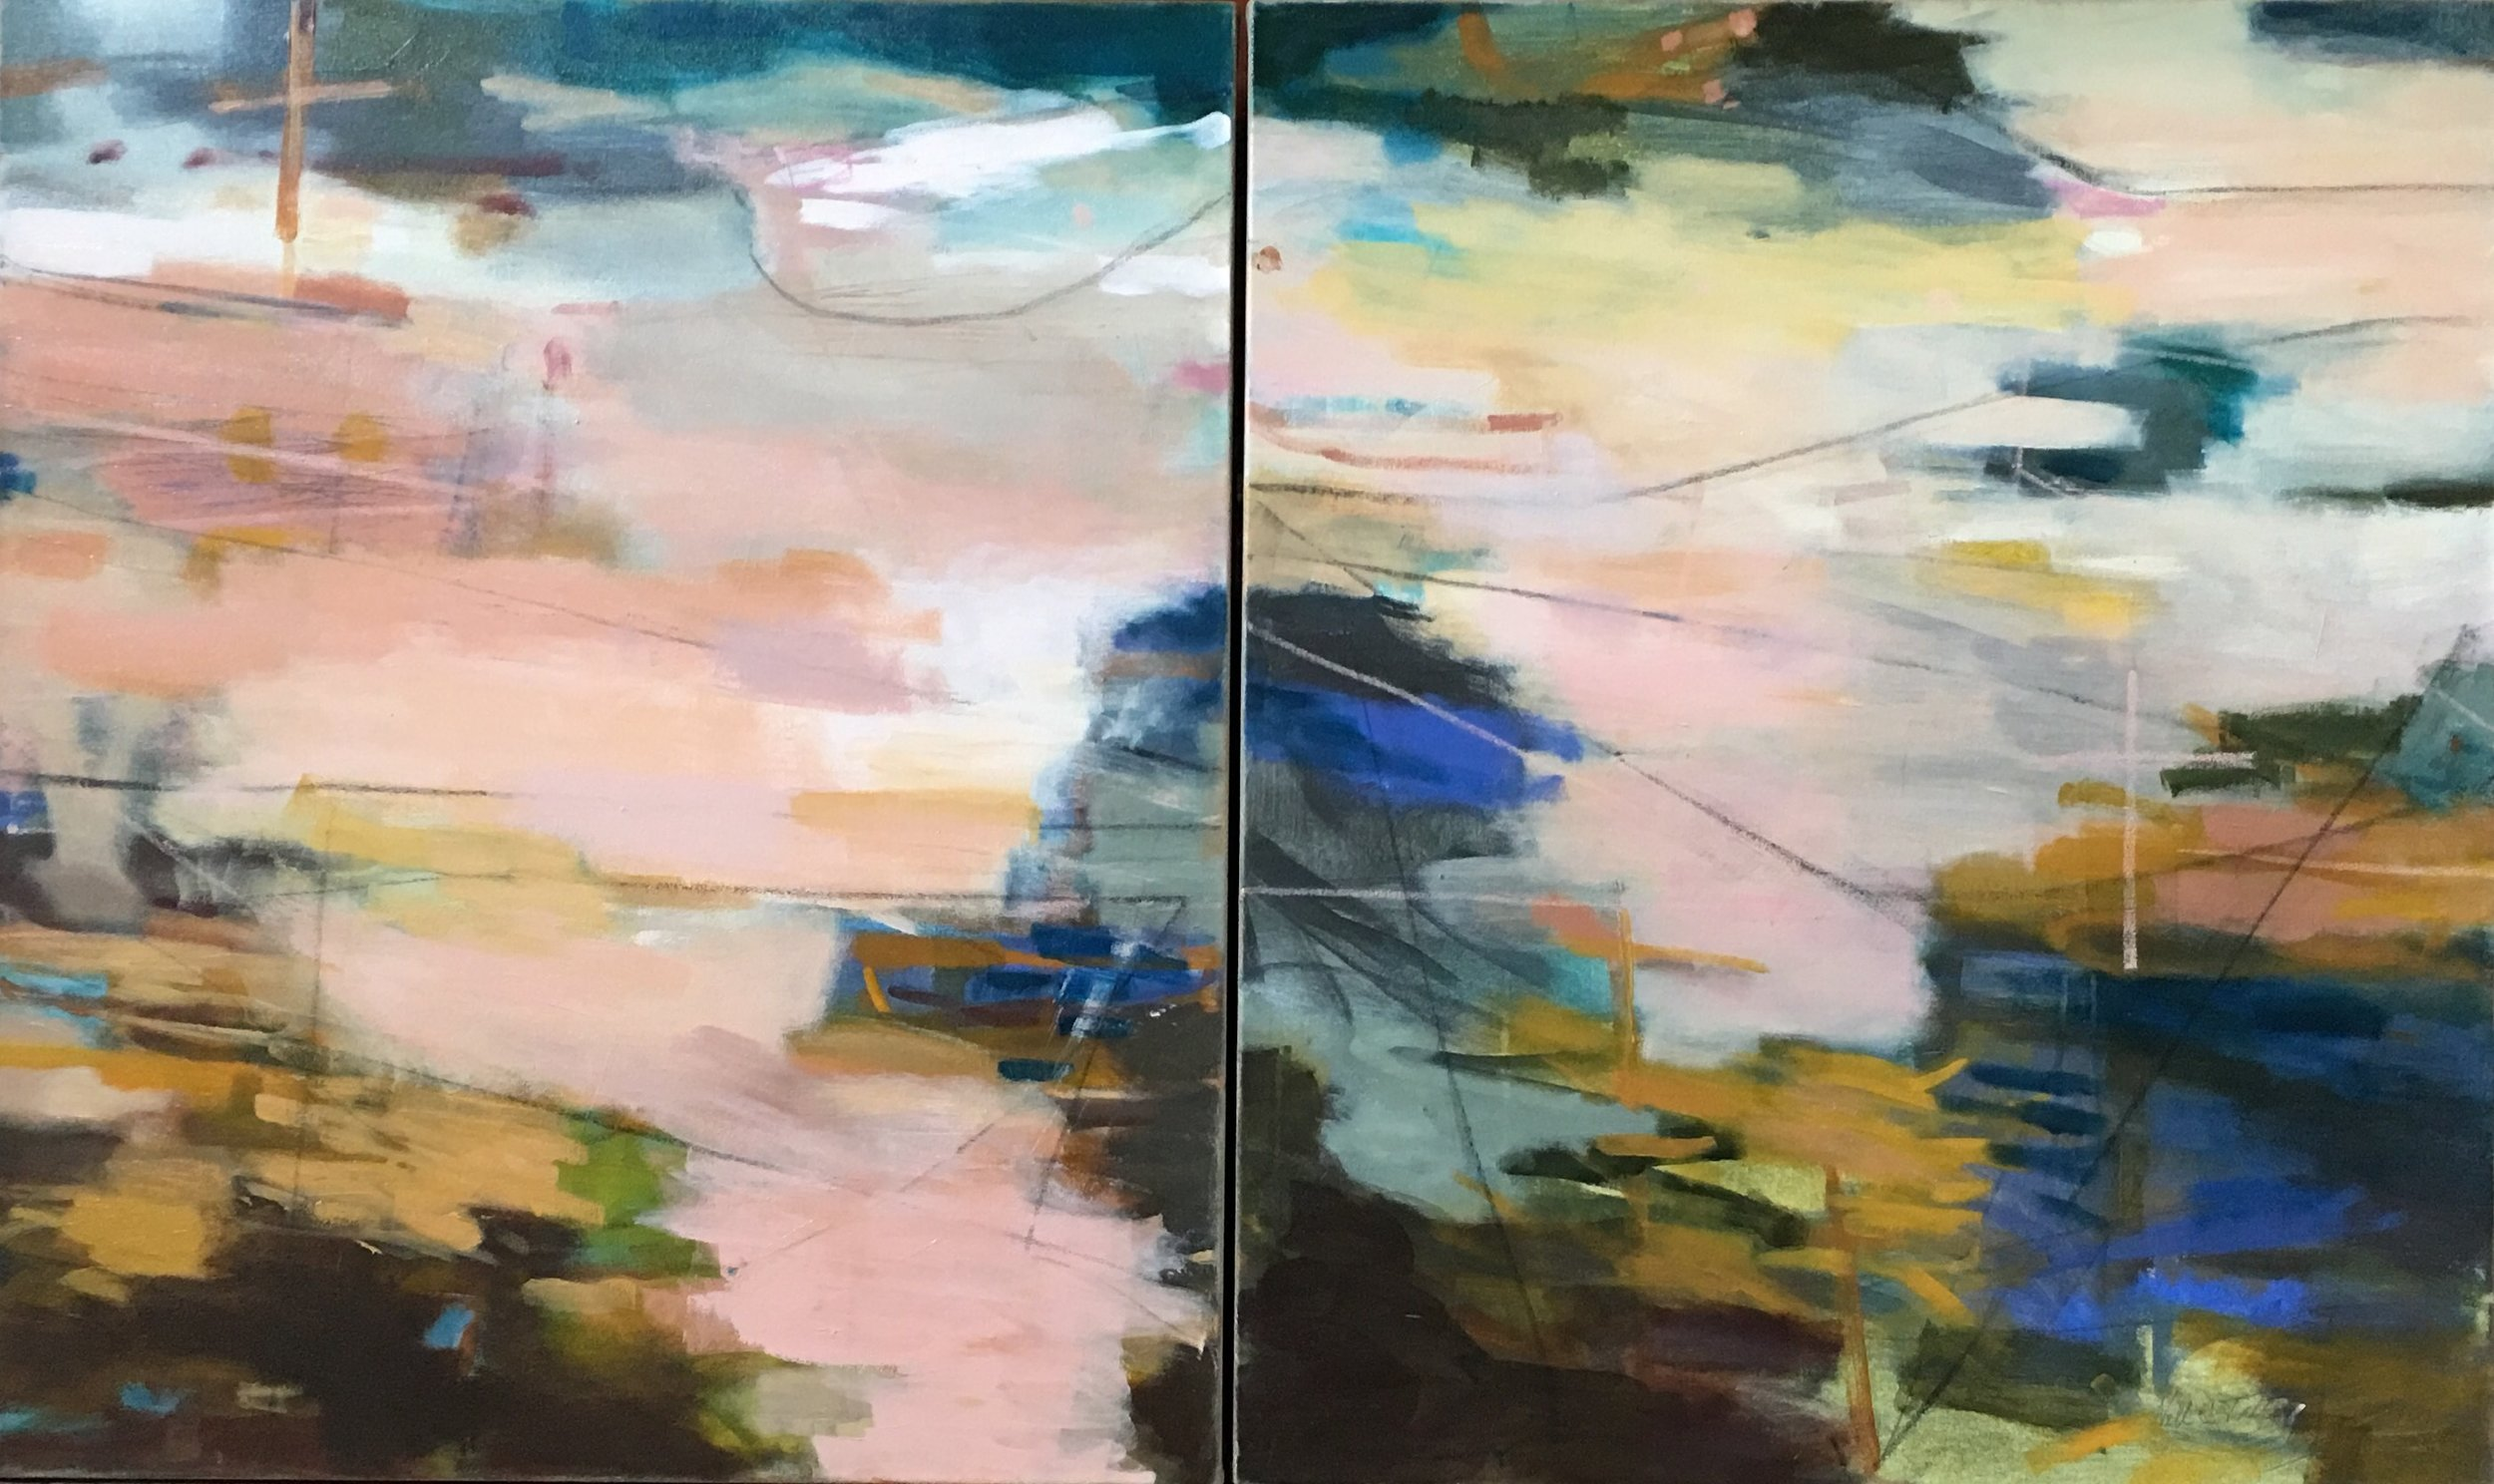 """Untitled"" Commission 36"" x 48"" (diptych) Acrylic/Mixed Media on Canvas"